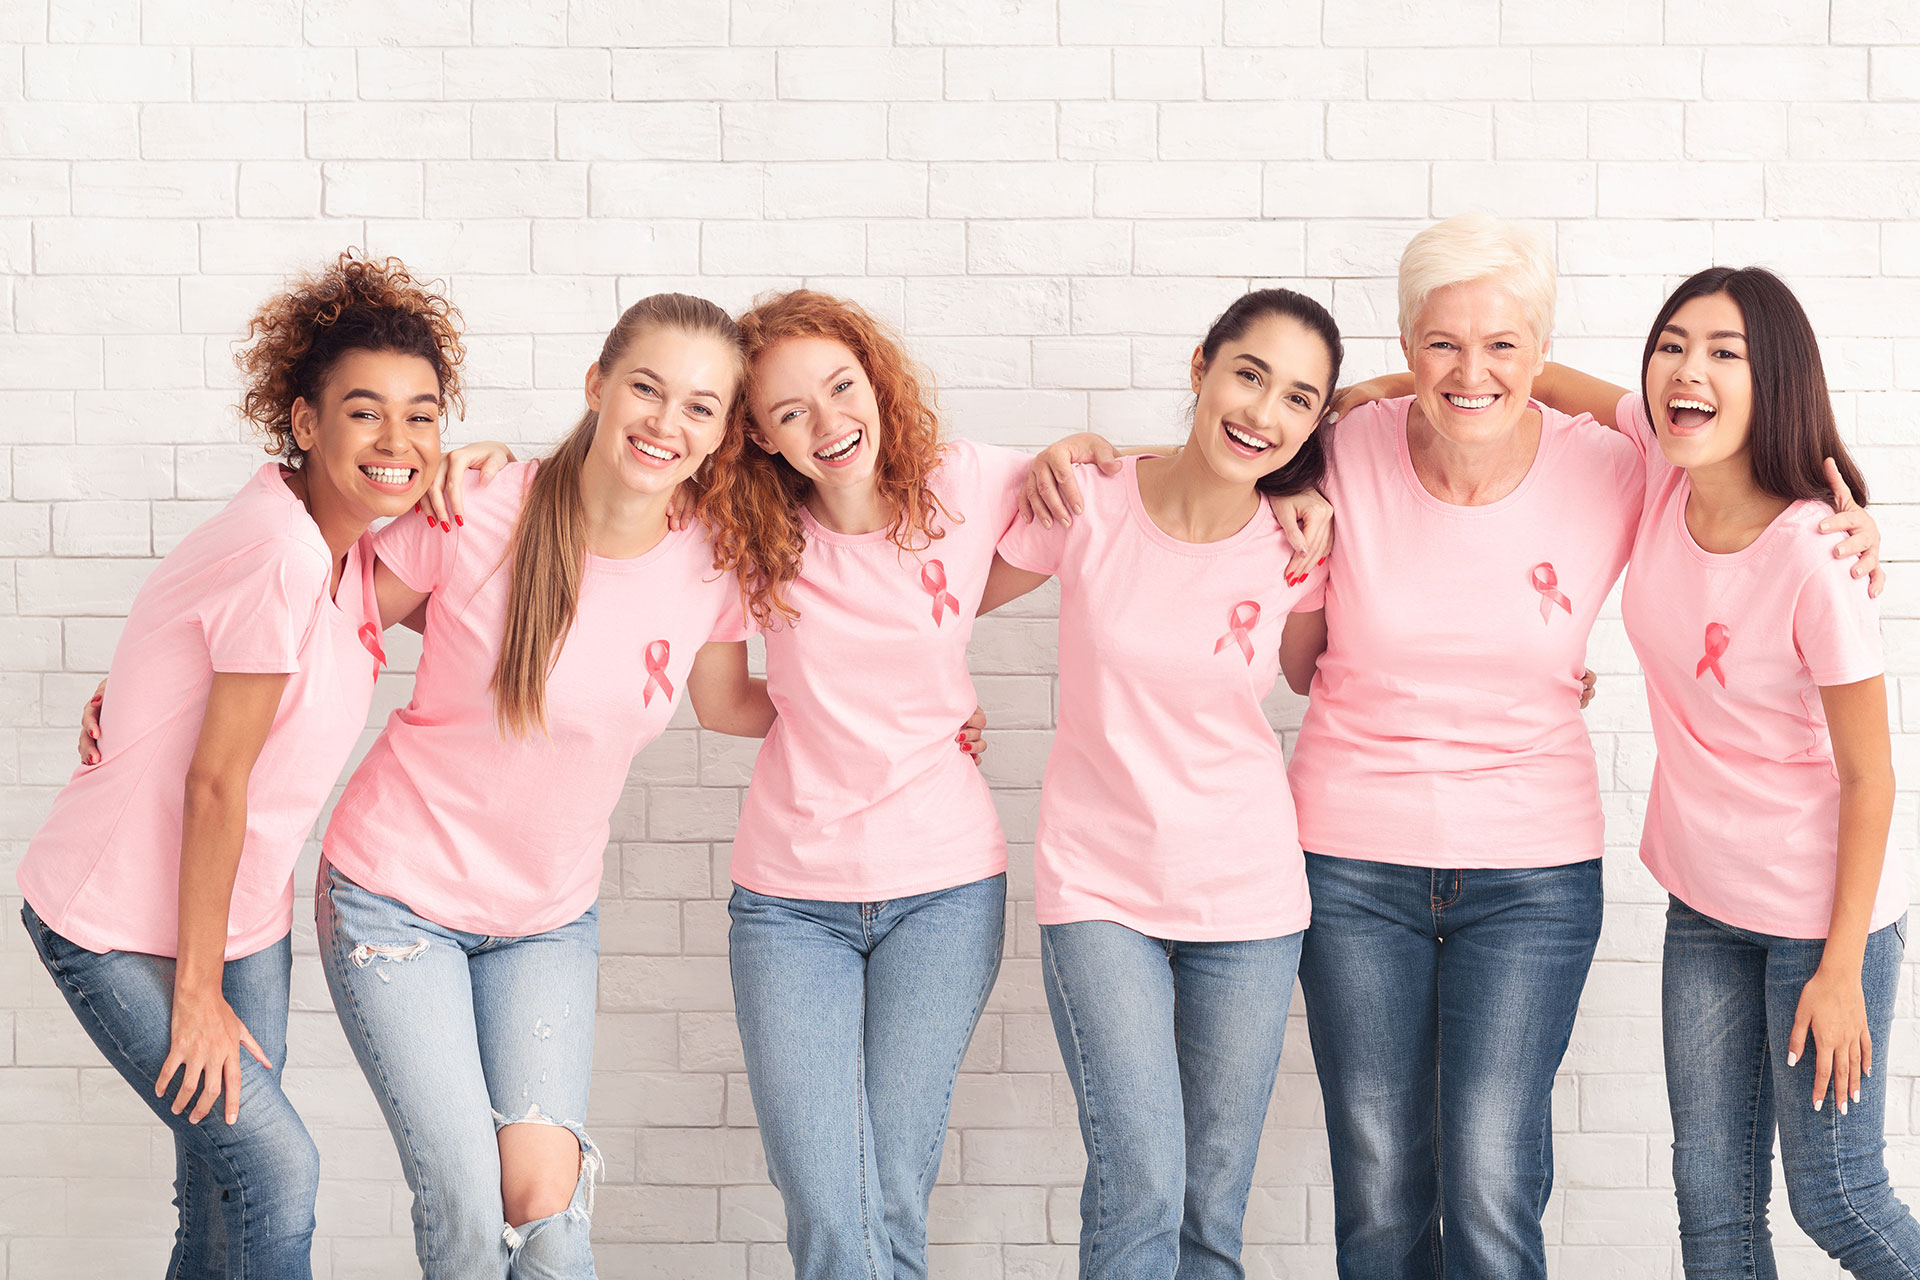 Women showing support for breast cancer